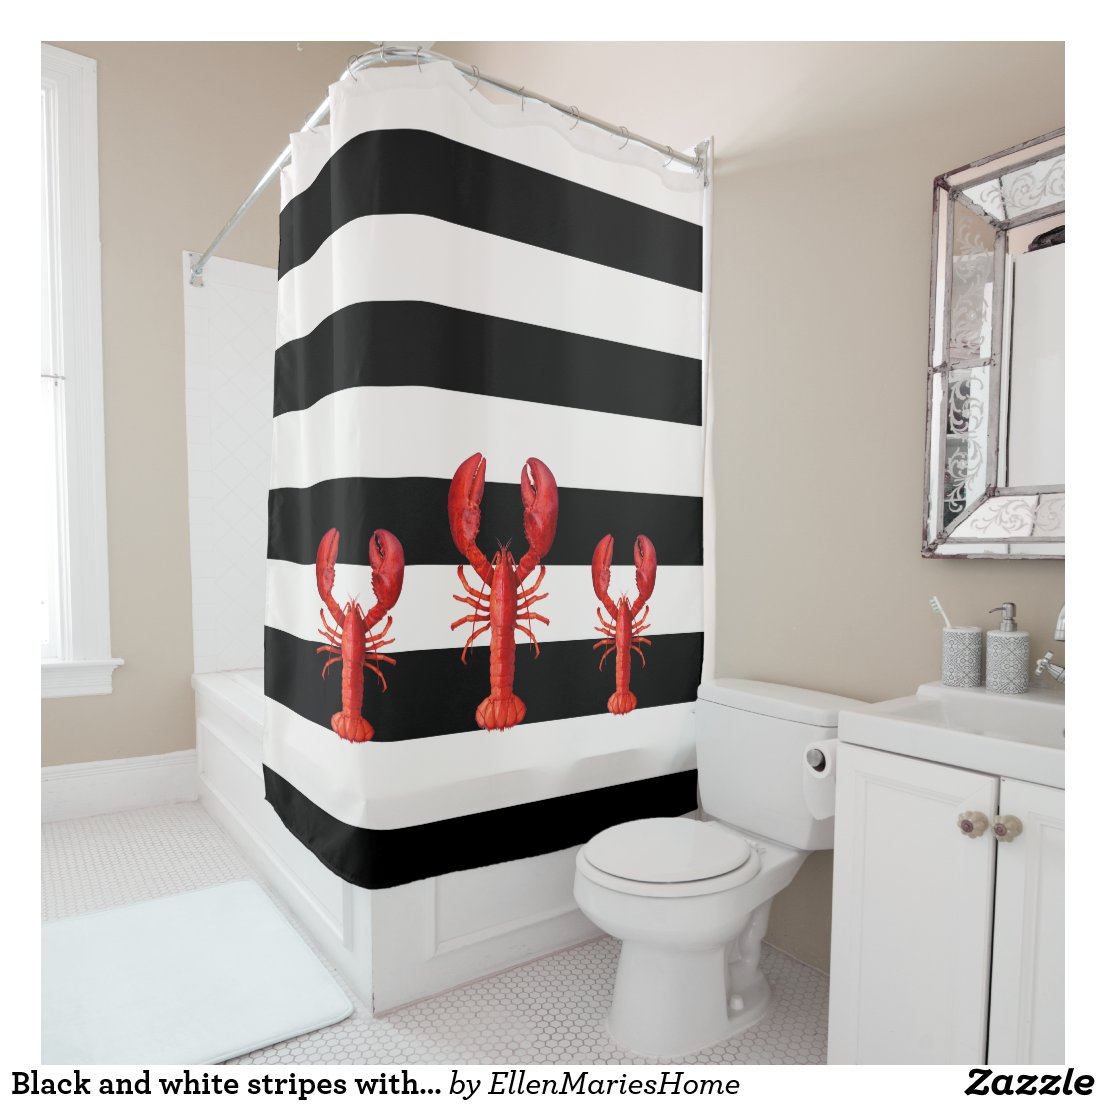 Black and white stripes with red lobsters